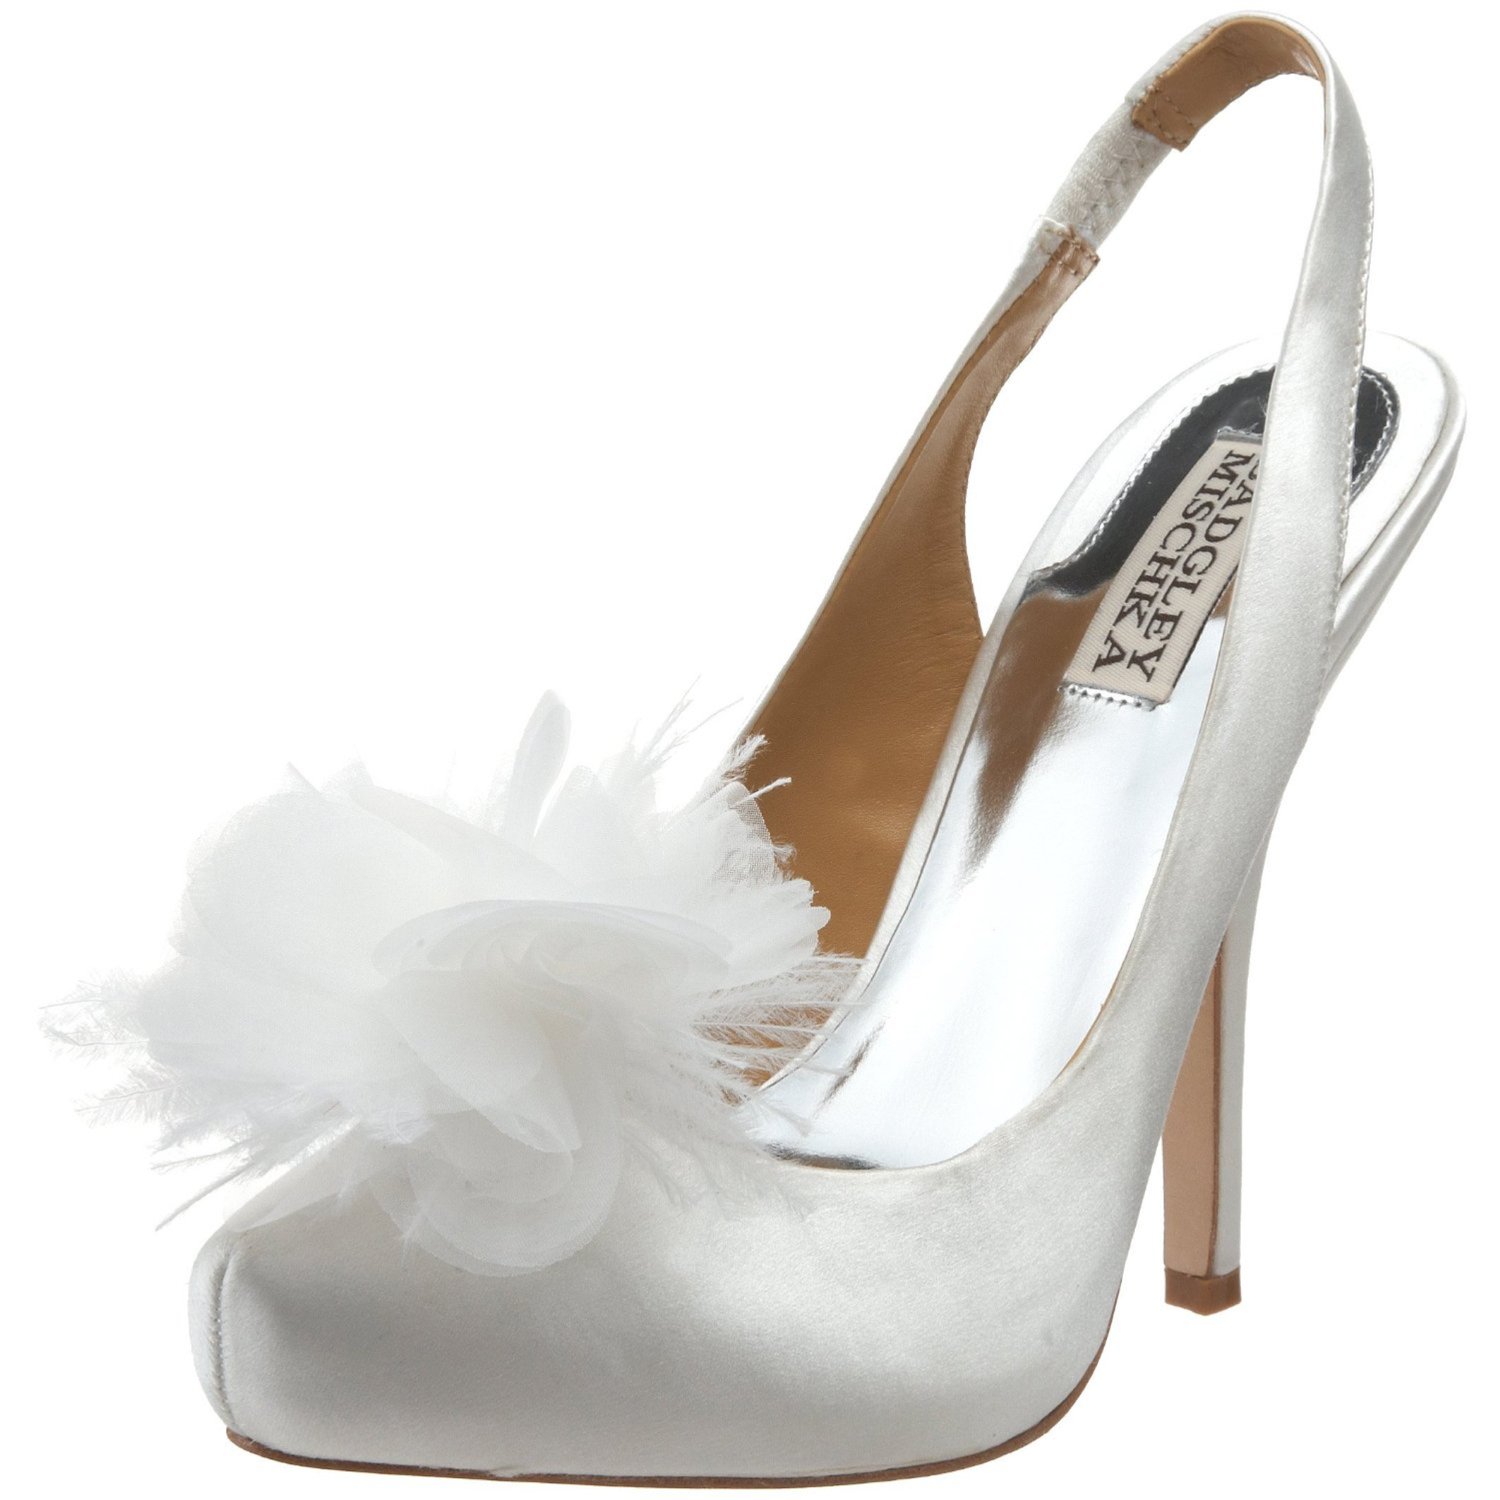 Luxe Gold Satin Peep Toe Wedding Shoes With Vintage Inspired Brooch